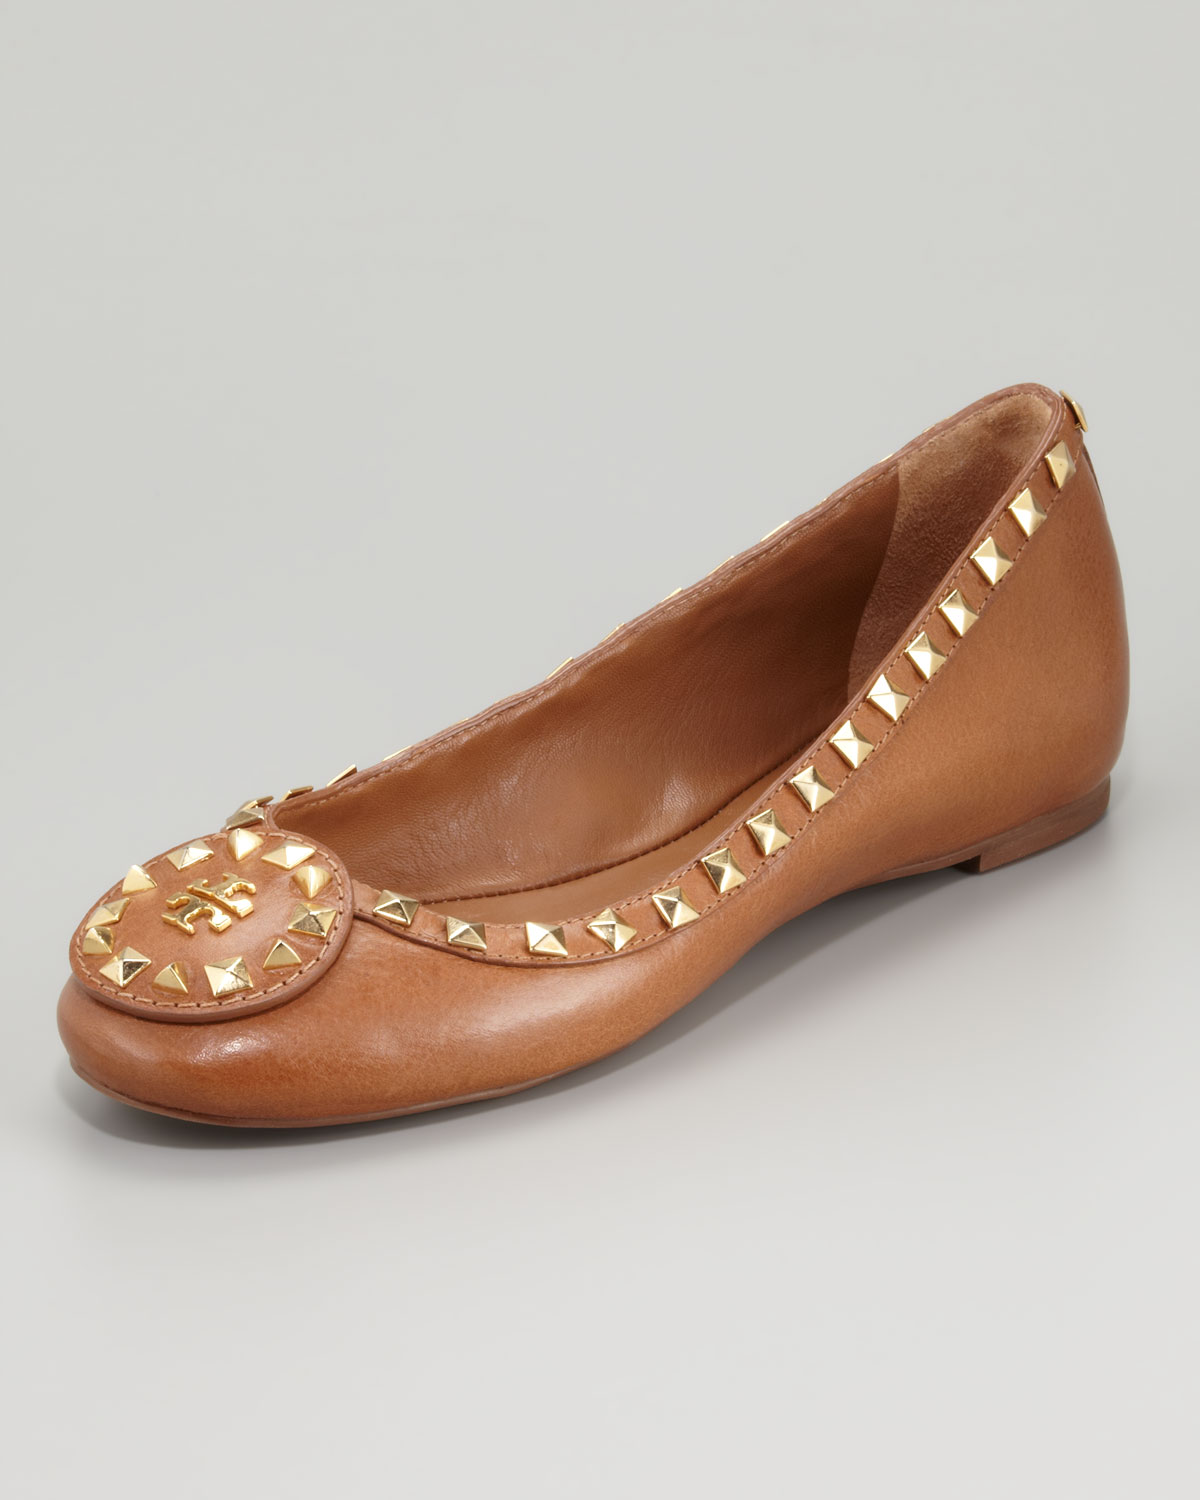 outlet with mastercard Tory Burch Stud-Embellished Round-Toe Flats sale Cheapest best seller sale online buy cheap visit cheap sale buy xJhCLYlVaQ